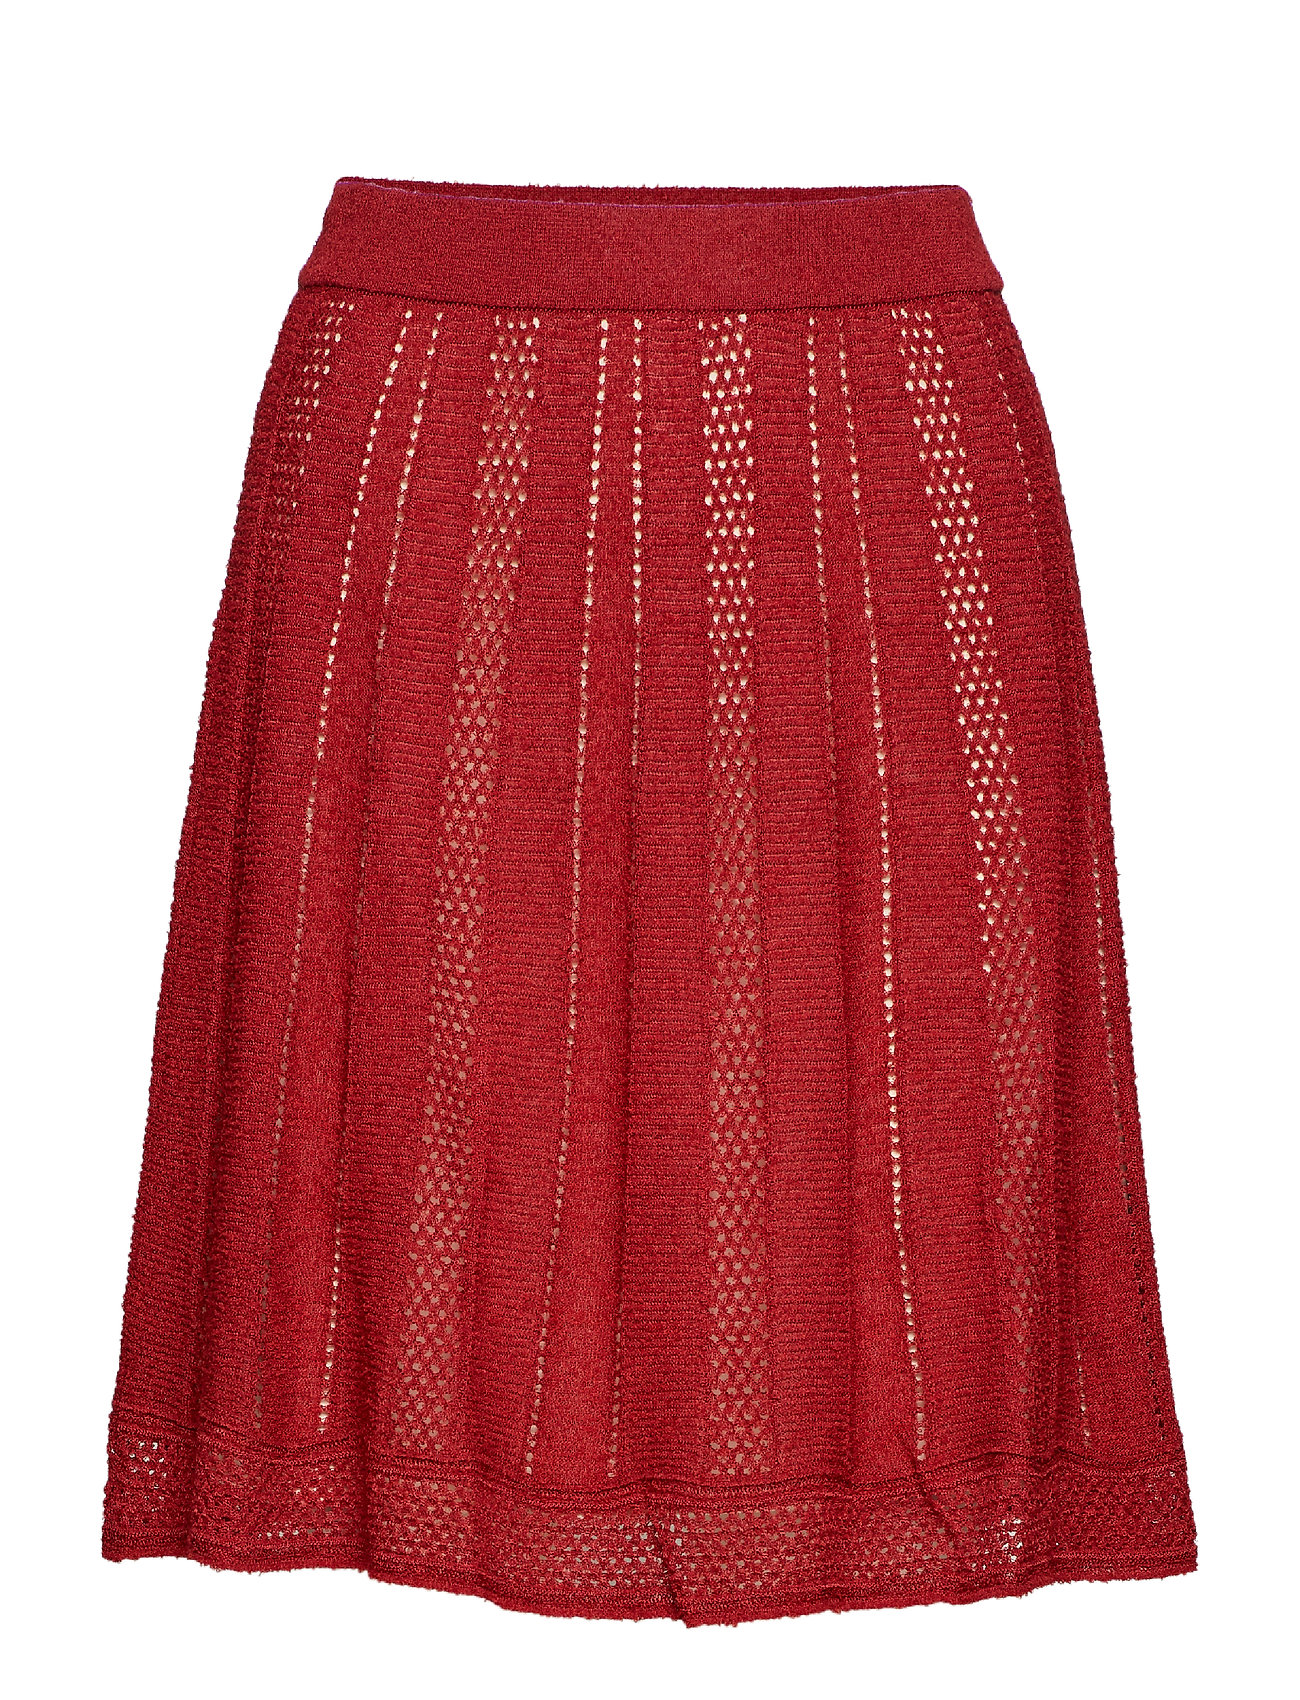 M Missoni M Missoni-SKIRT - RED